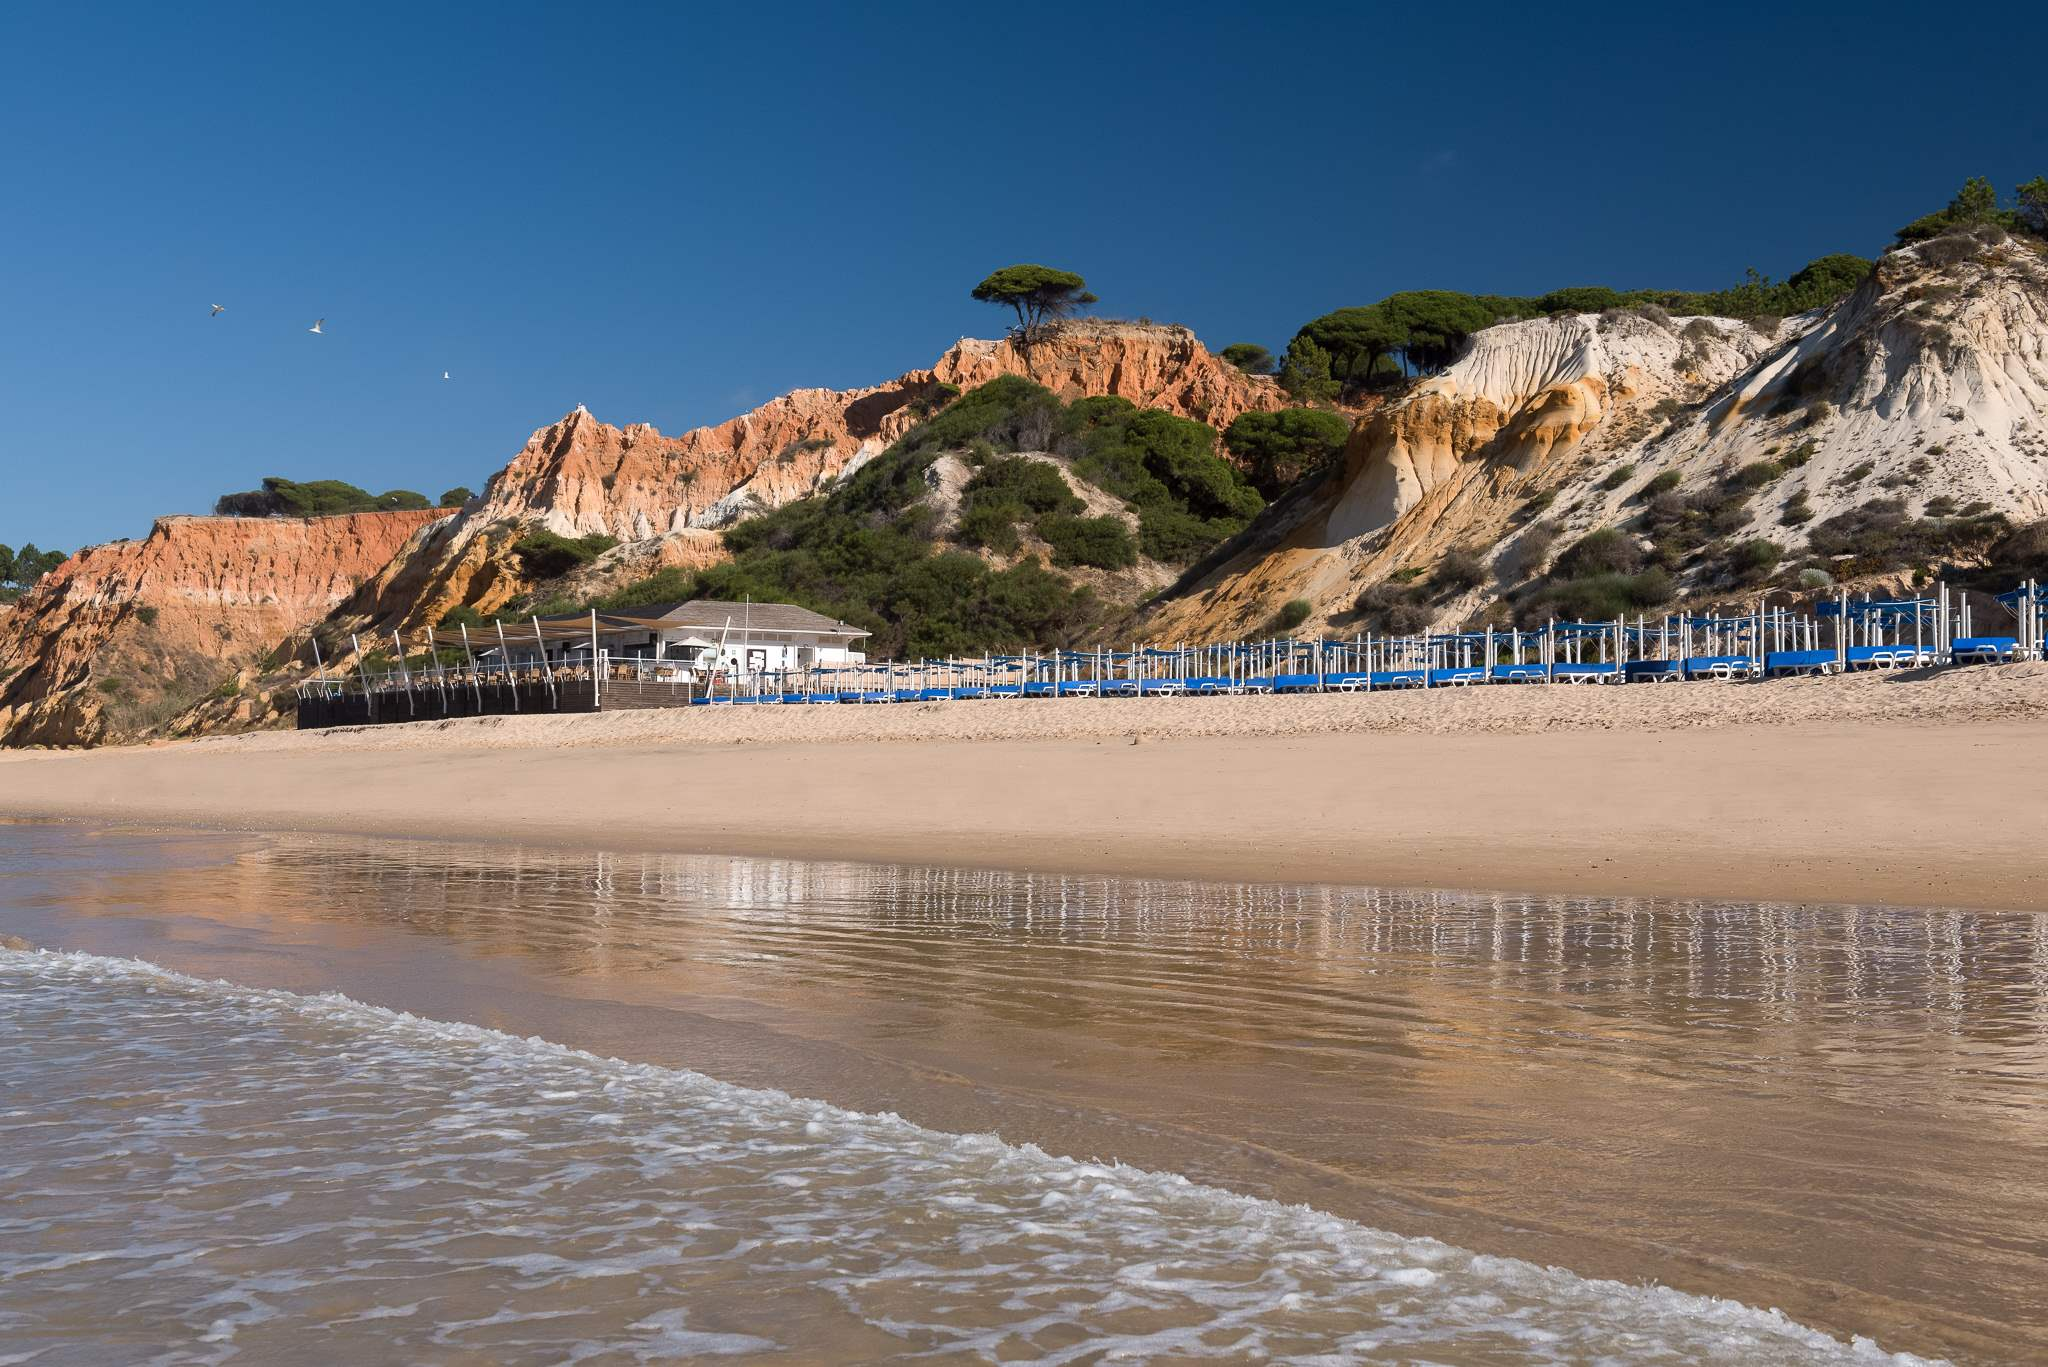 Pine Cliffs Gardens, Two Bedroom Suite, S/C Basis, 2 bedroom apartment in Pine Cliffs Resort, Algarve Photo #32